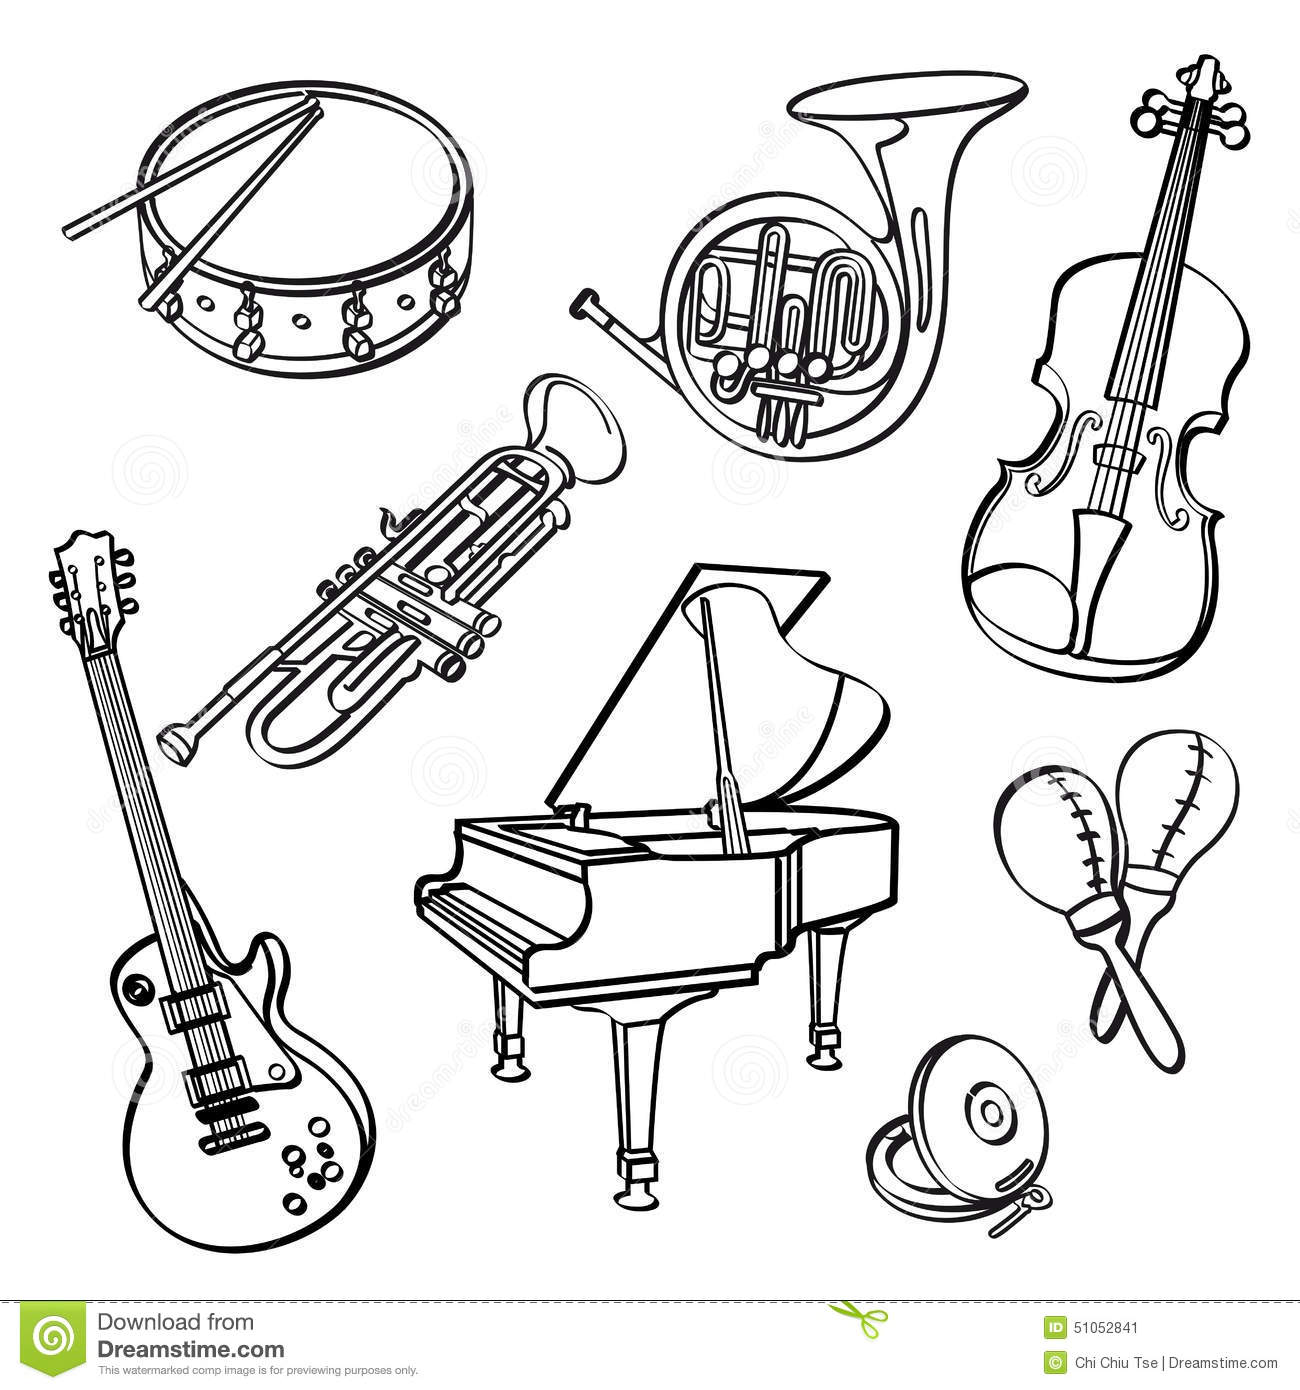 Free printable pictures of musical instruments Cached